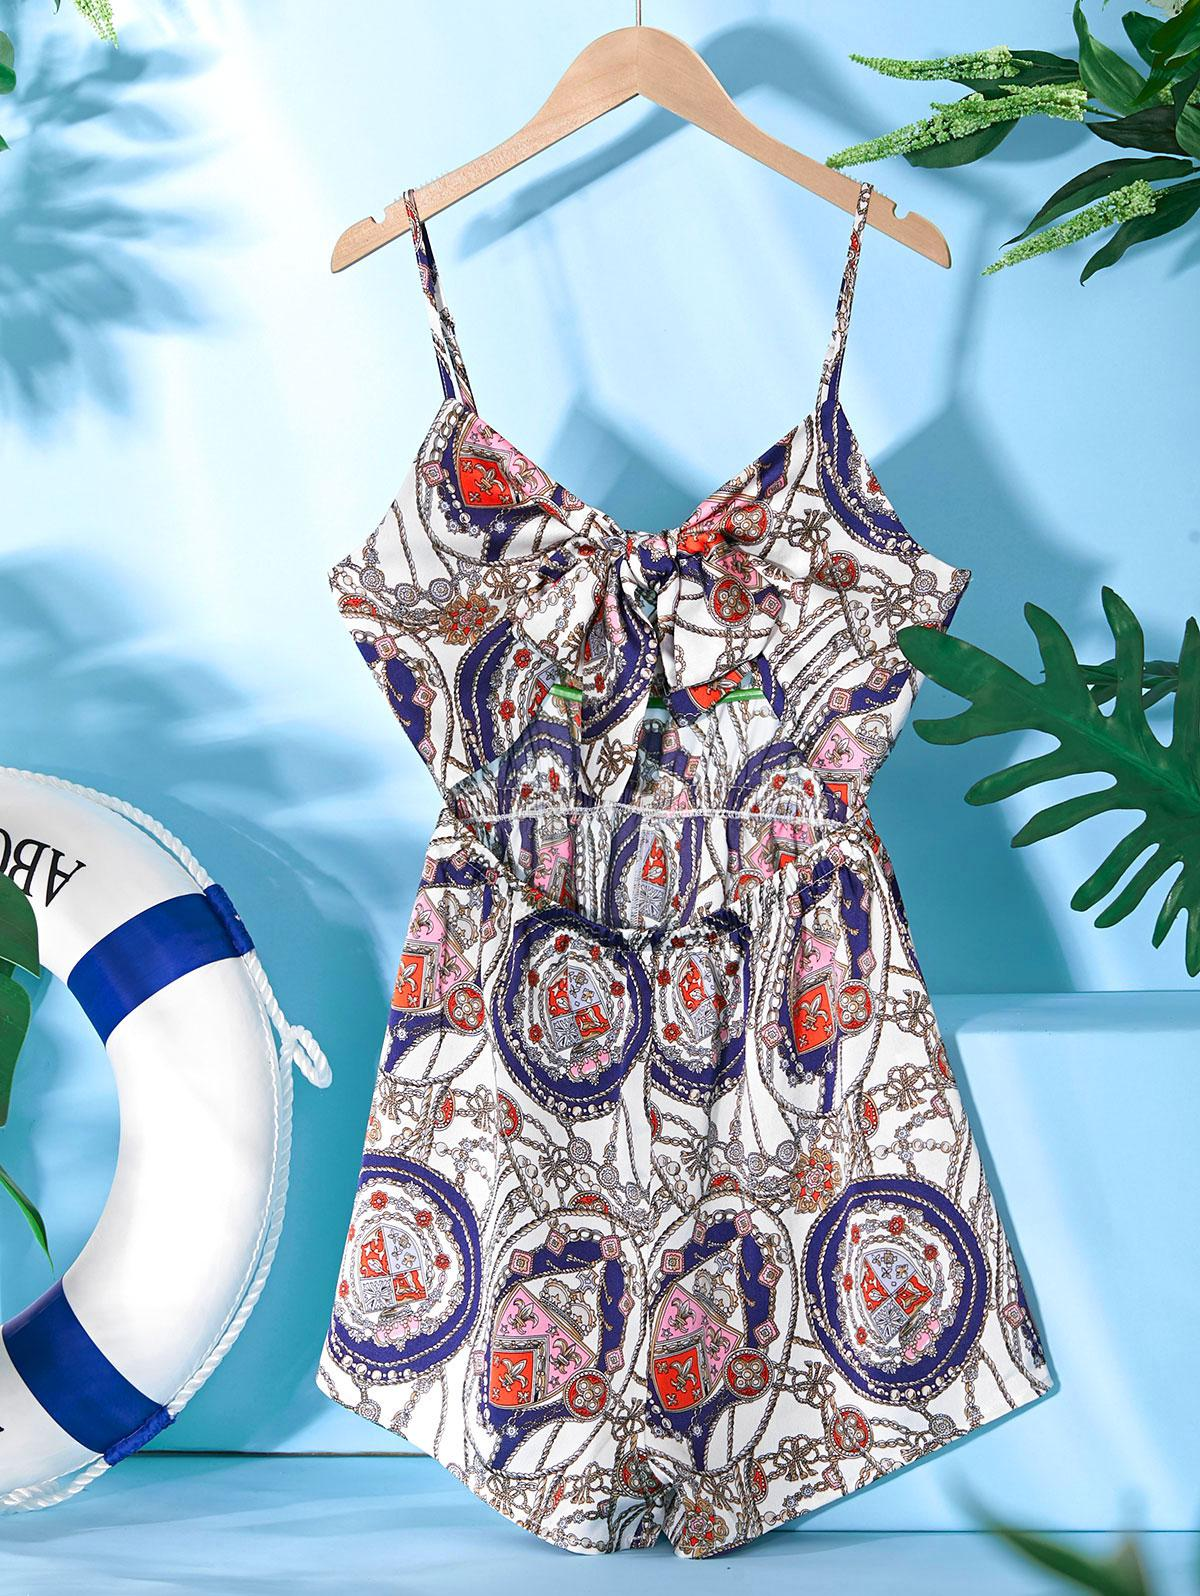 ZAFUL Sailing Rope Anchor Print Knotted Romper